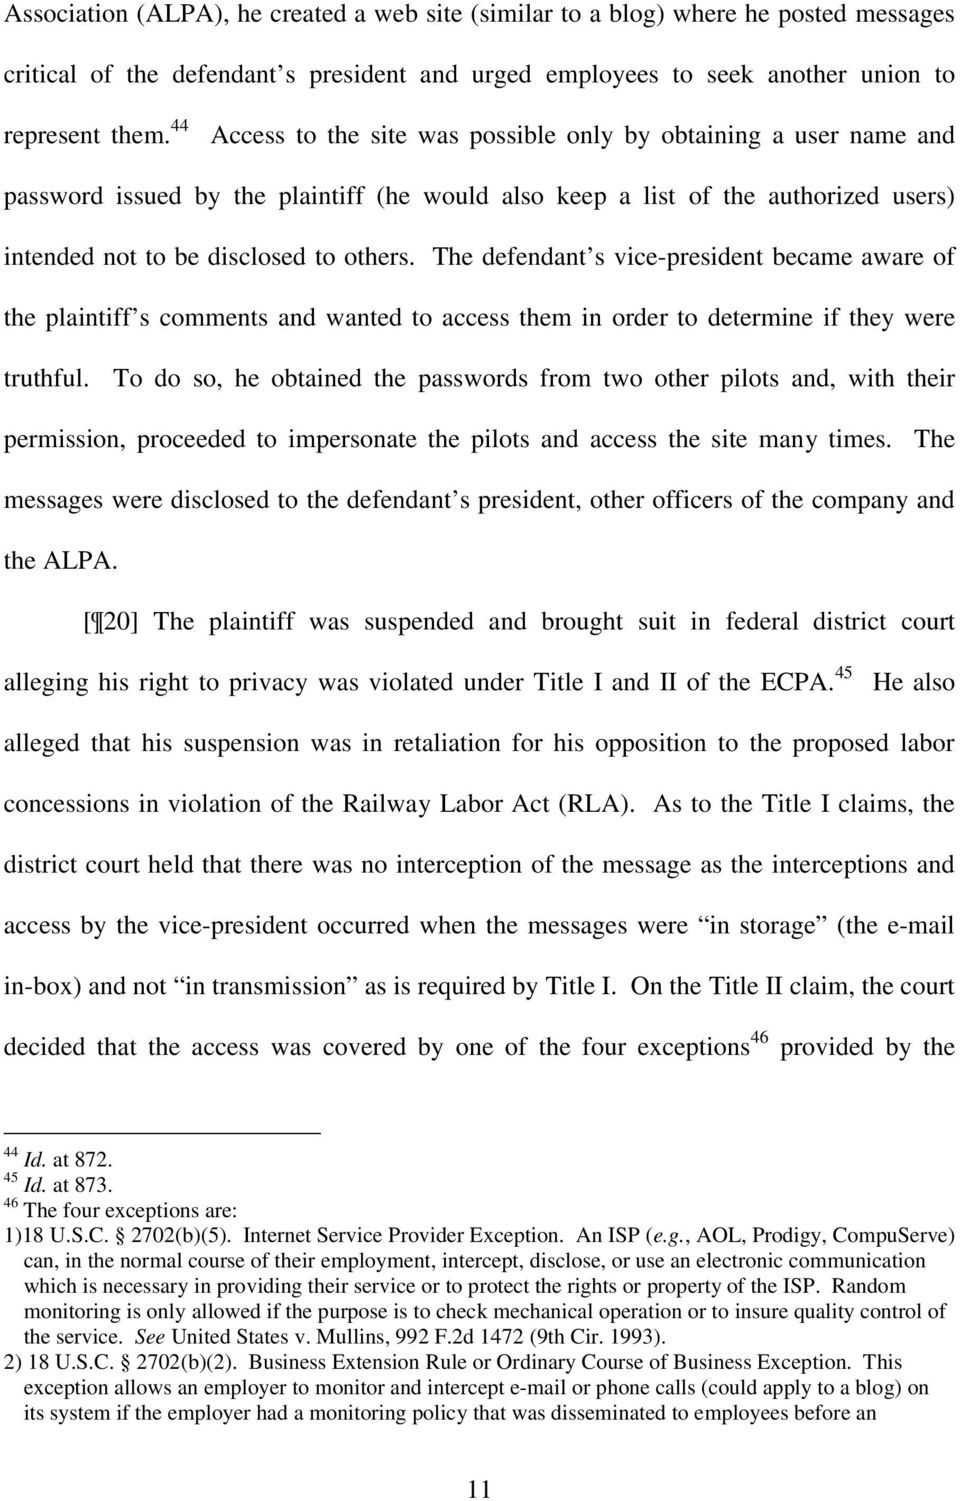 The defendant s vice-president became aware of the plaintiff s comments and wanted to access them in order to determine if they were truthful.